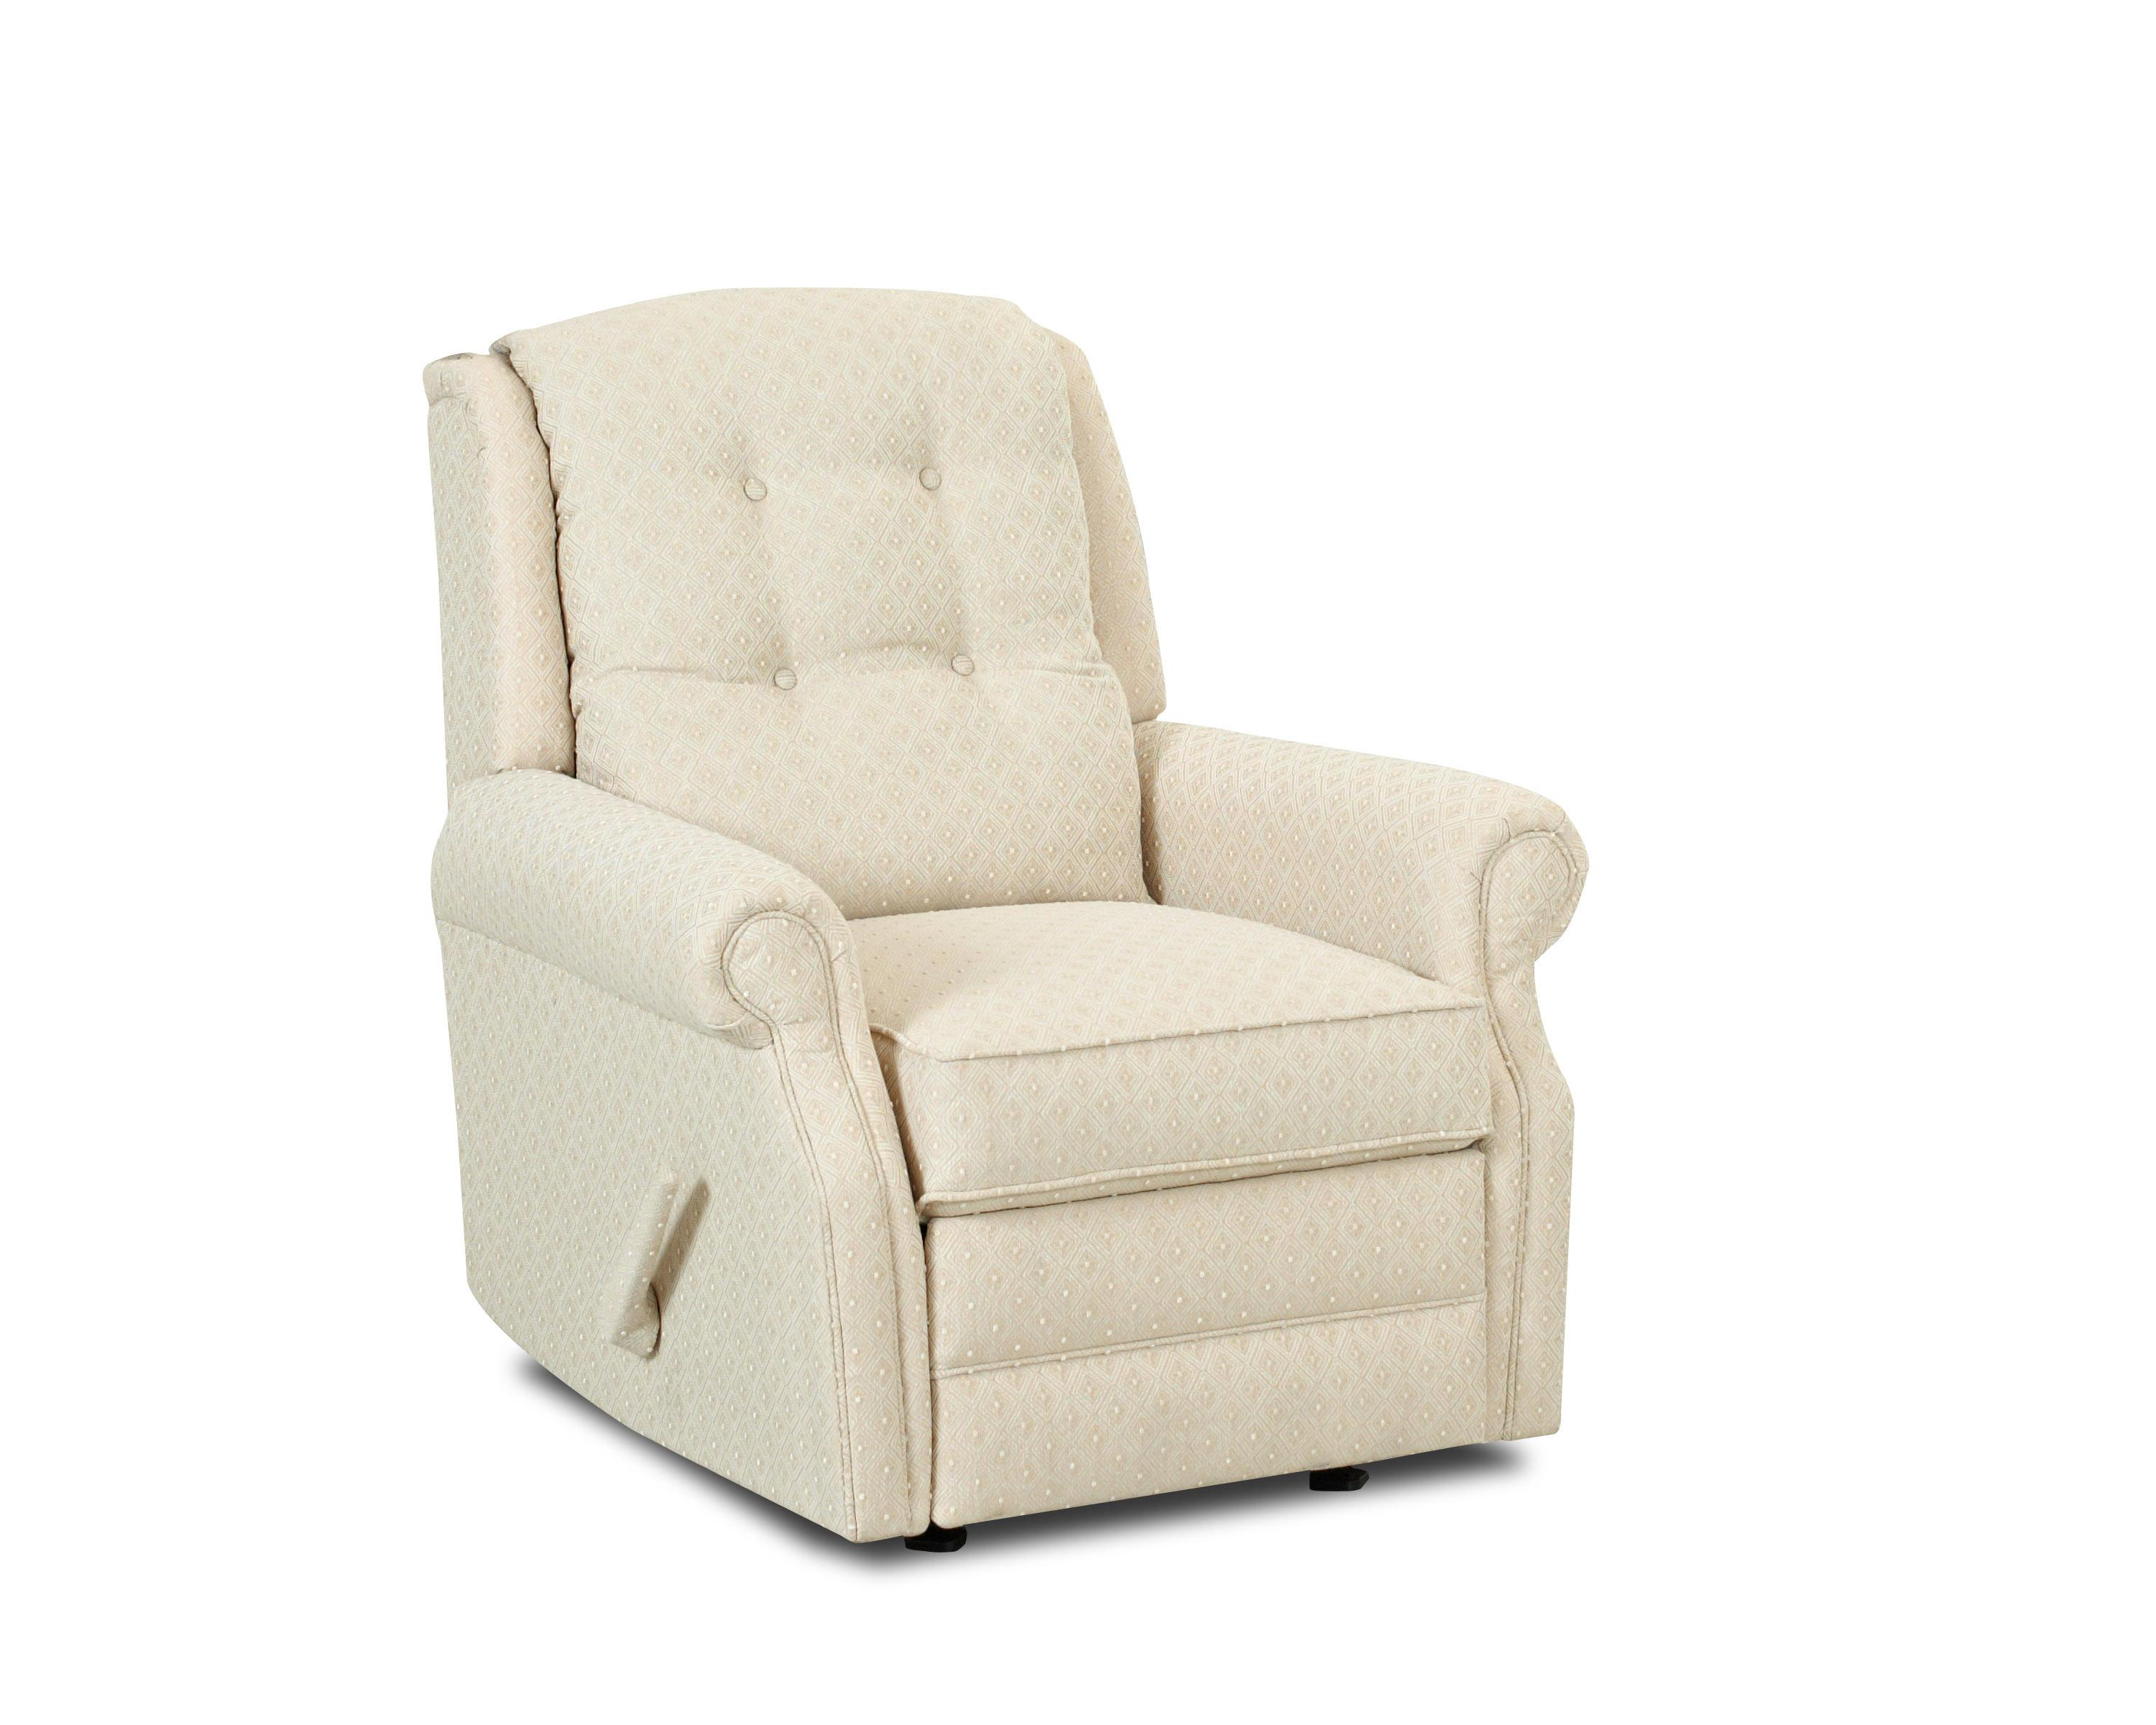 Transitional Manual Swivel Rocking Reclining Chair with Button Tufting  sc 1 st  Wolf Furniture & Transitional Manual Swivel Rocking Reclining Chair with Button ... islam-shia.org